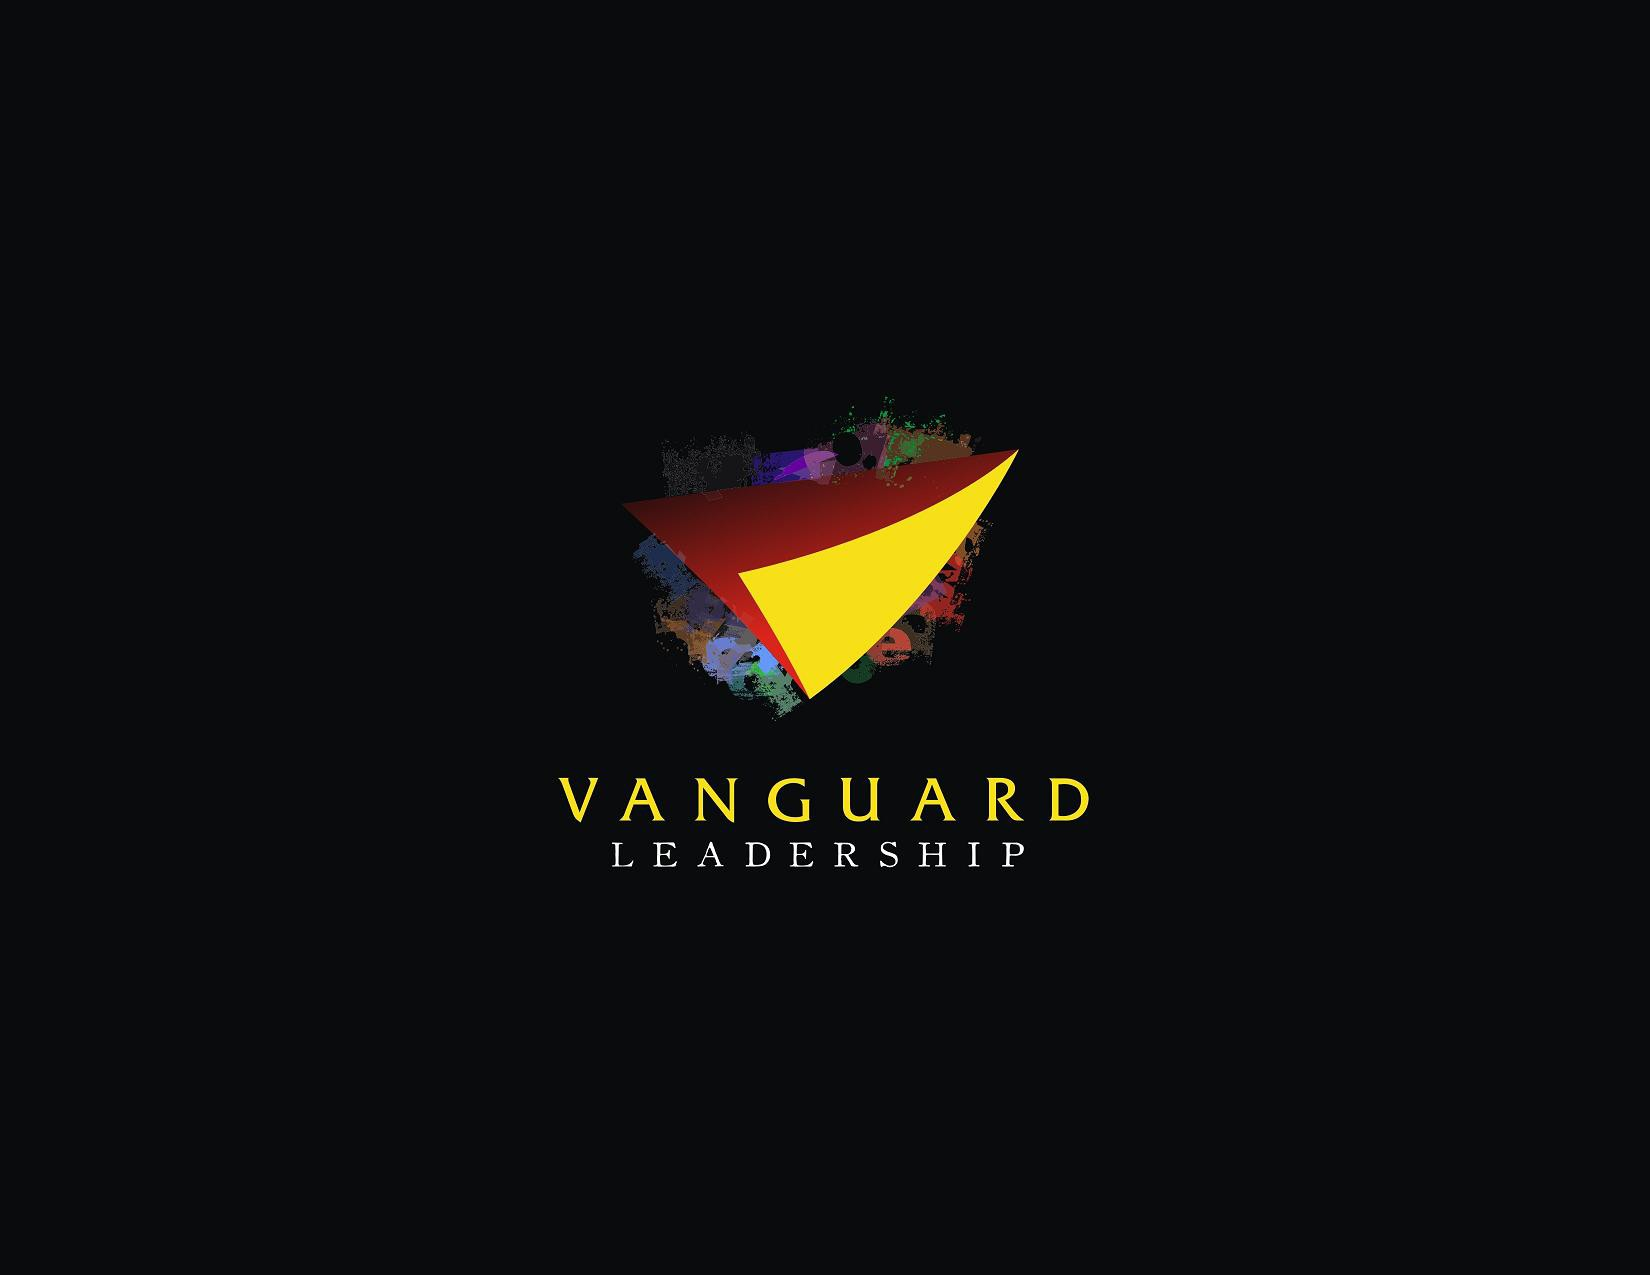 New logo wanted for Vanguard Leadership